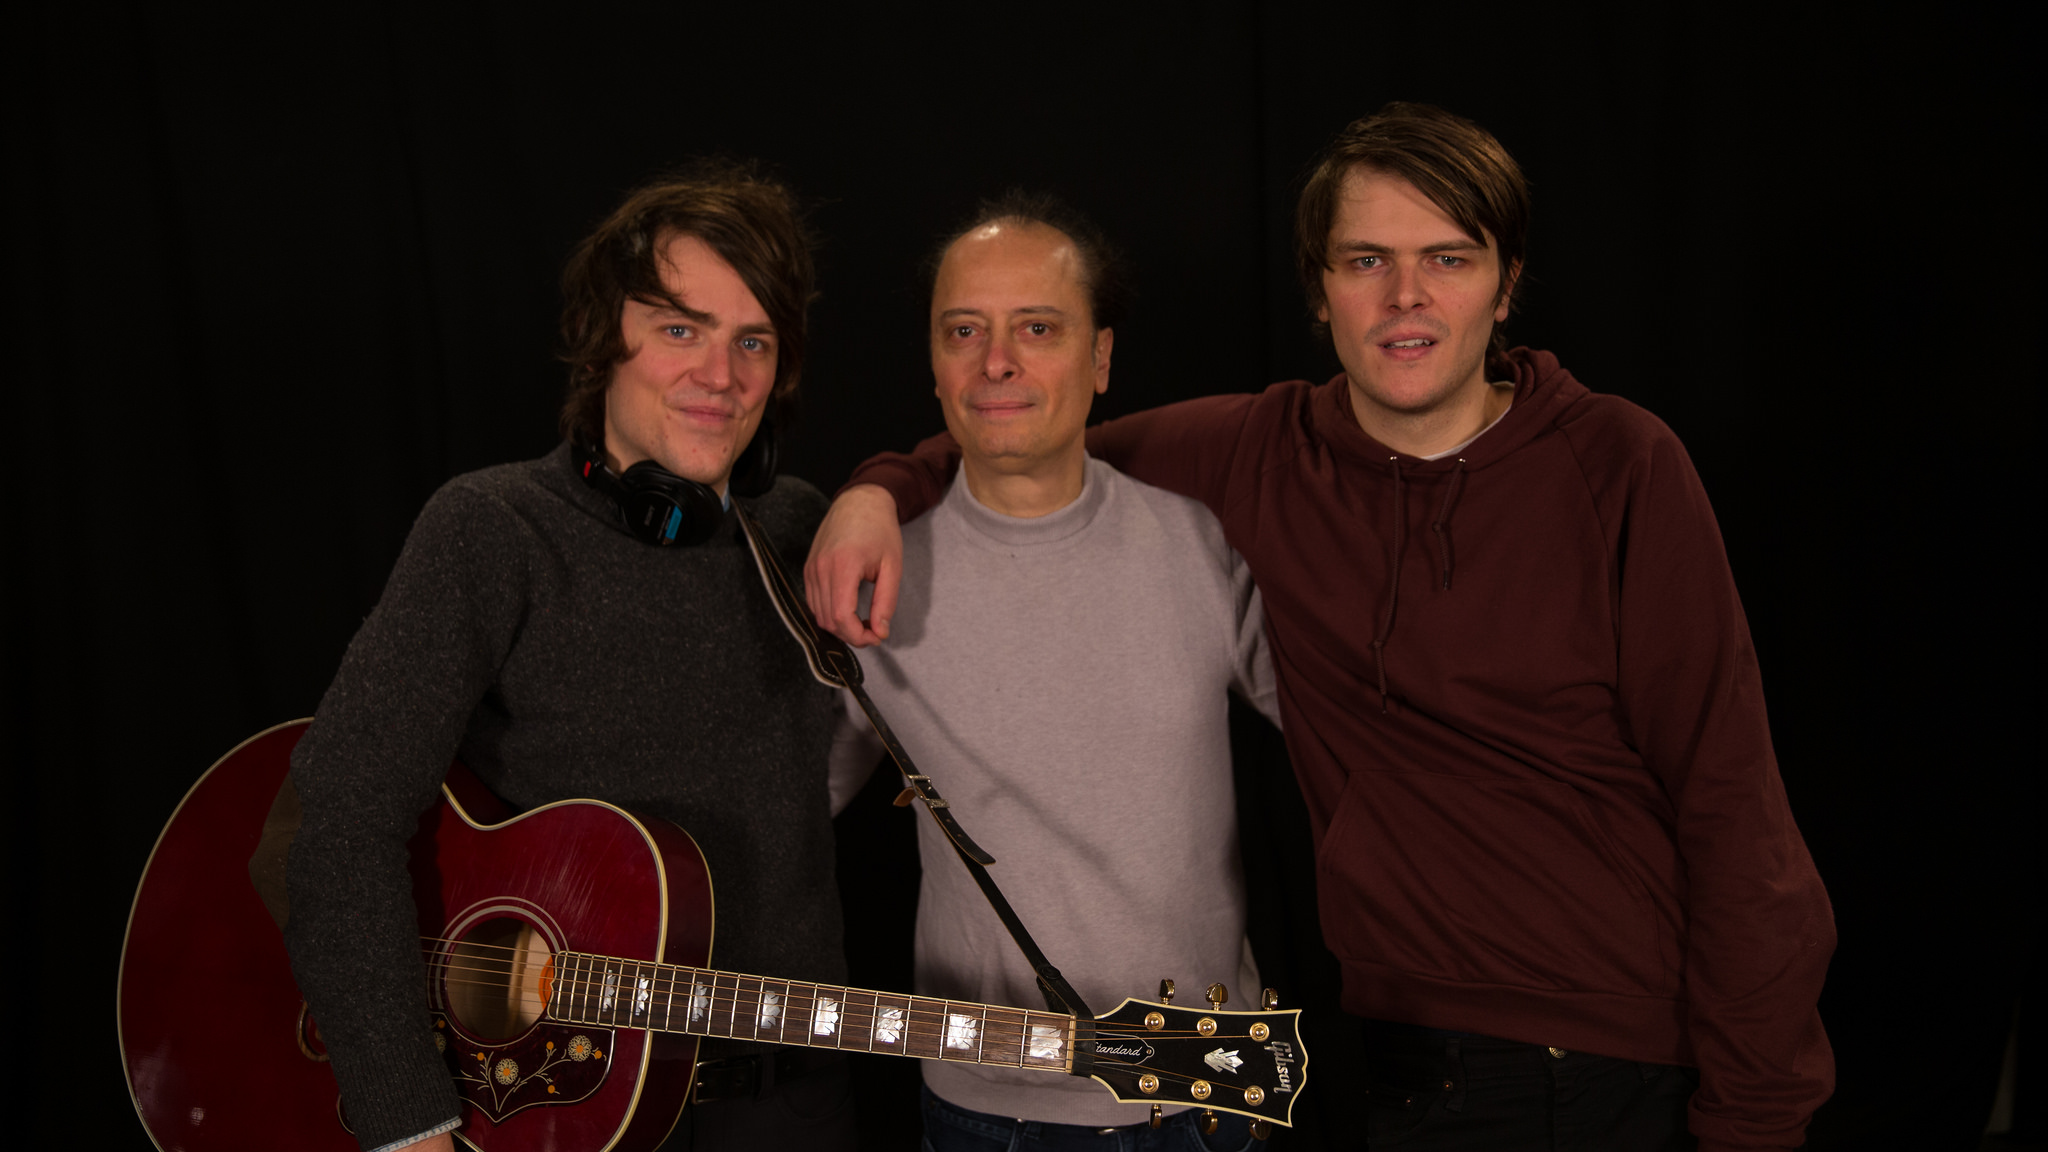 "(L-R) Trapper Schoepp, ""Cavalcade"" host Paul Cavalconte and Tanner Schoepp (photo by Thomas Koenig, WFUV)"